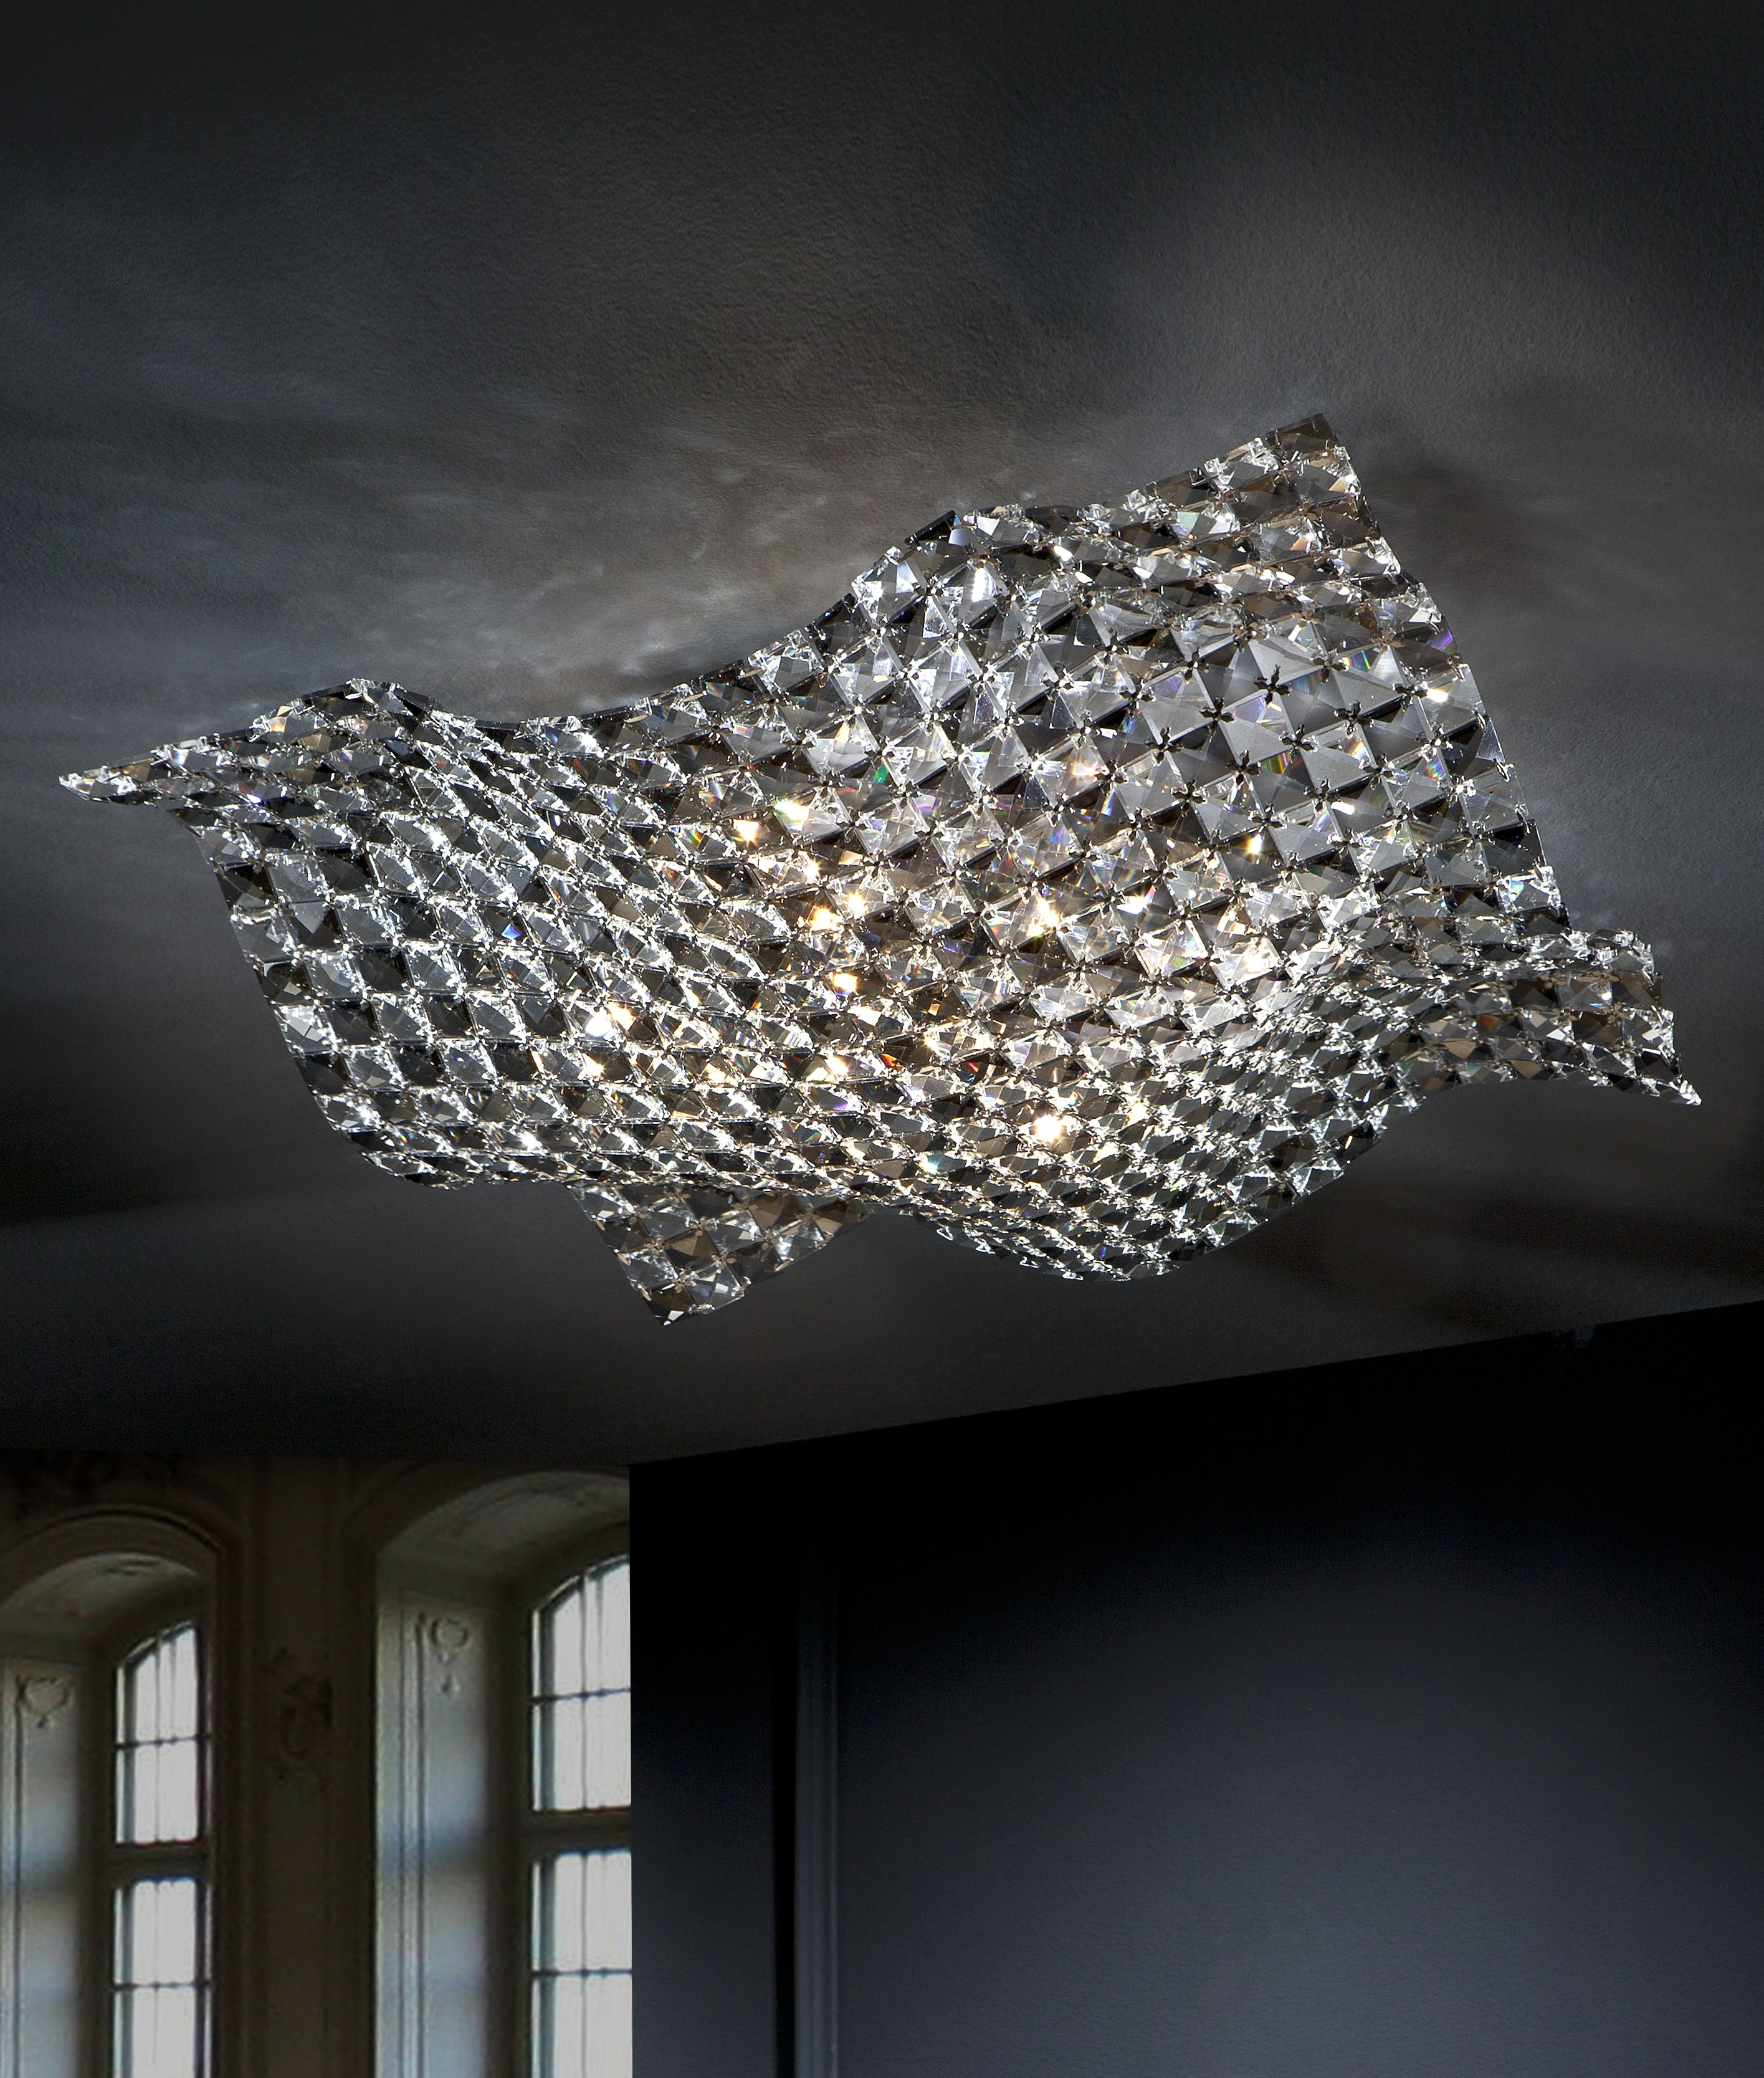 Modern Chandeliers Something Different Lighting Styles Pertaining To Flush Fitting Chandelier (Image 15 of 15)